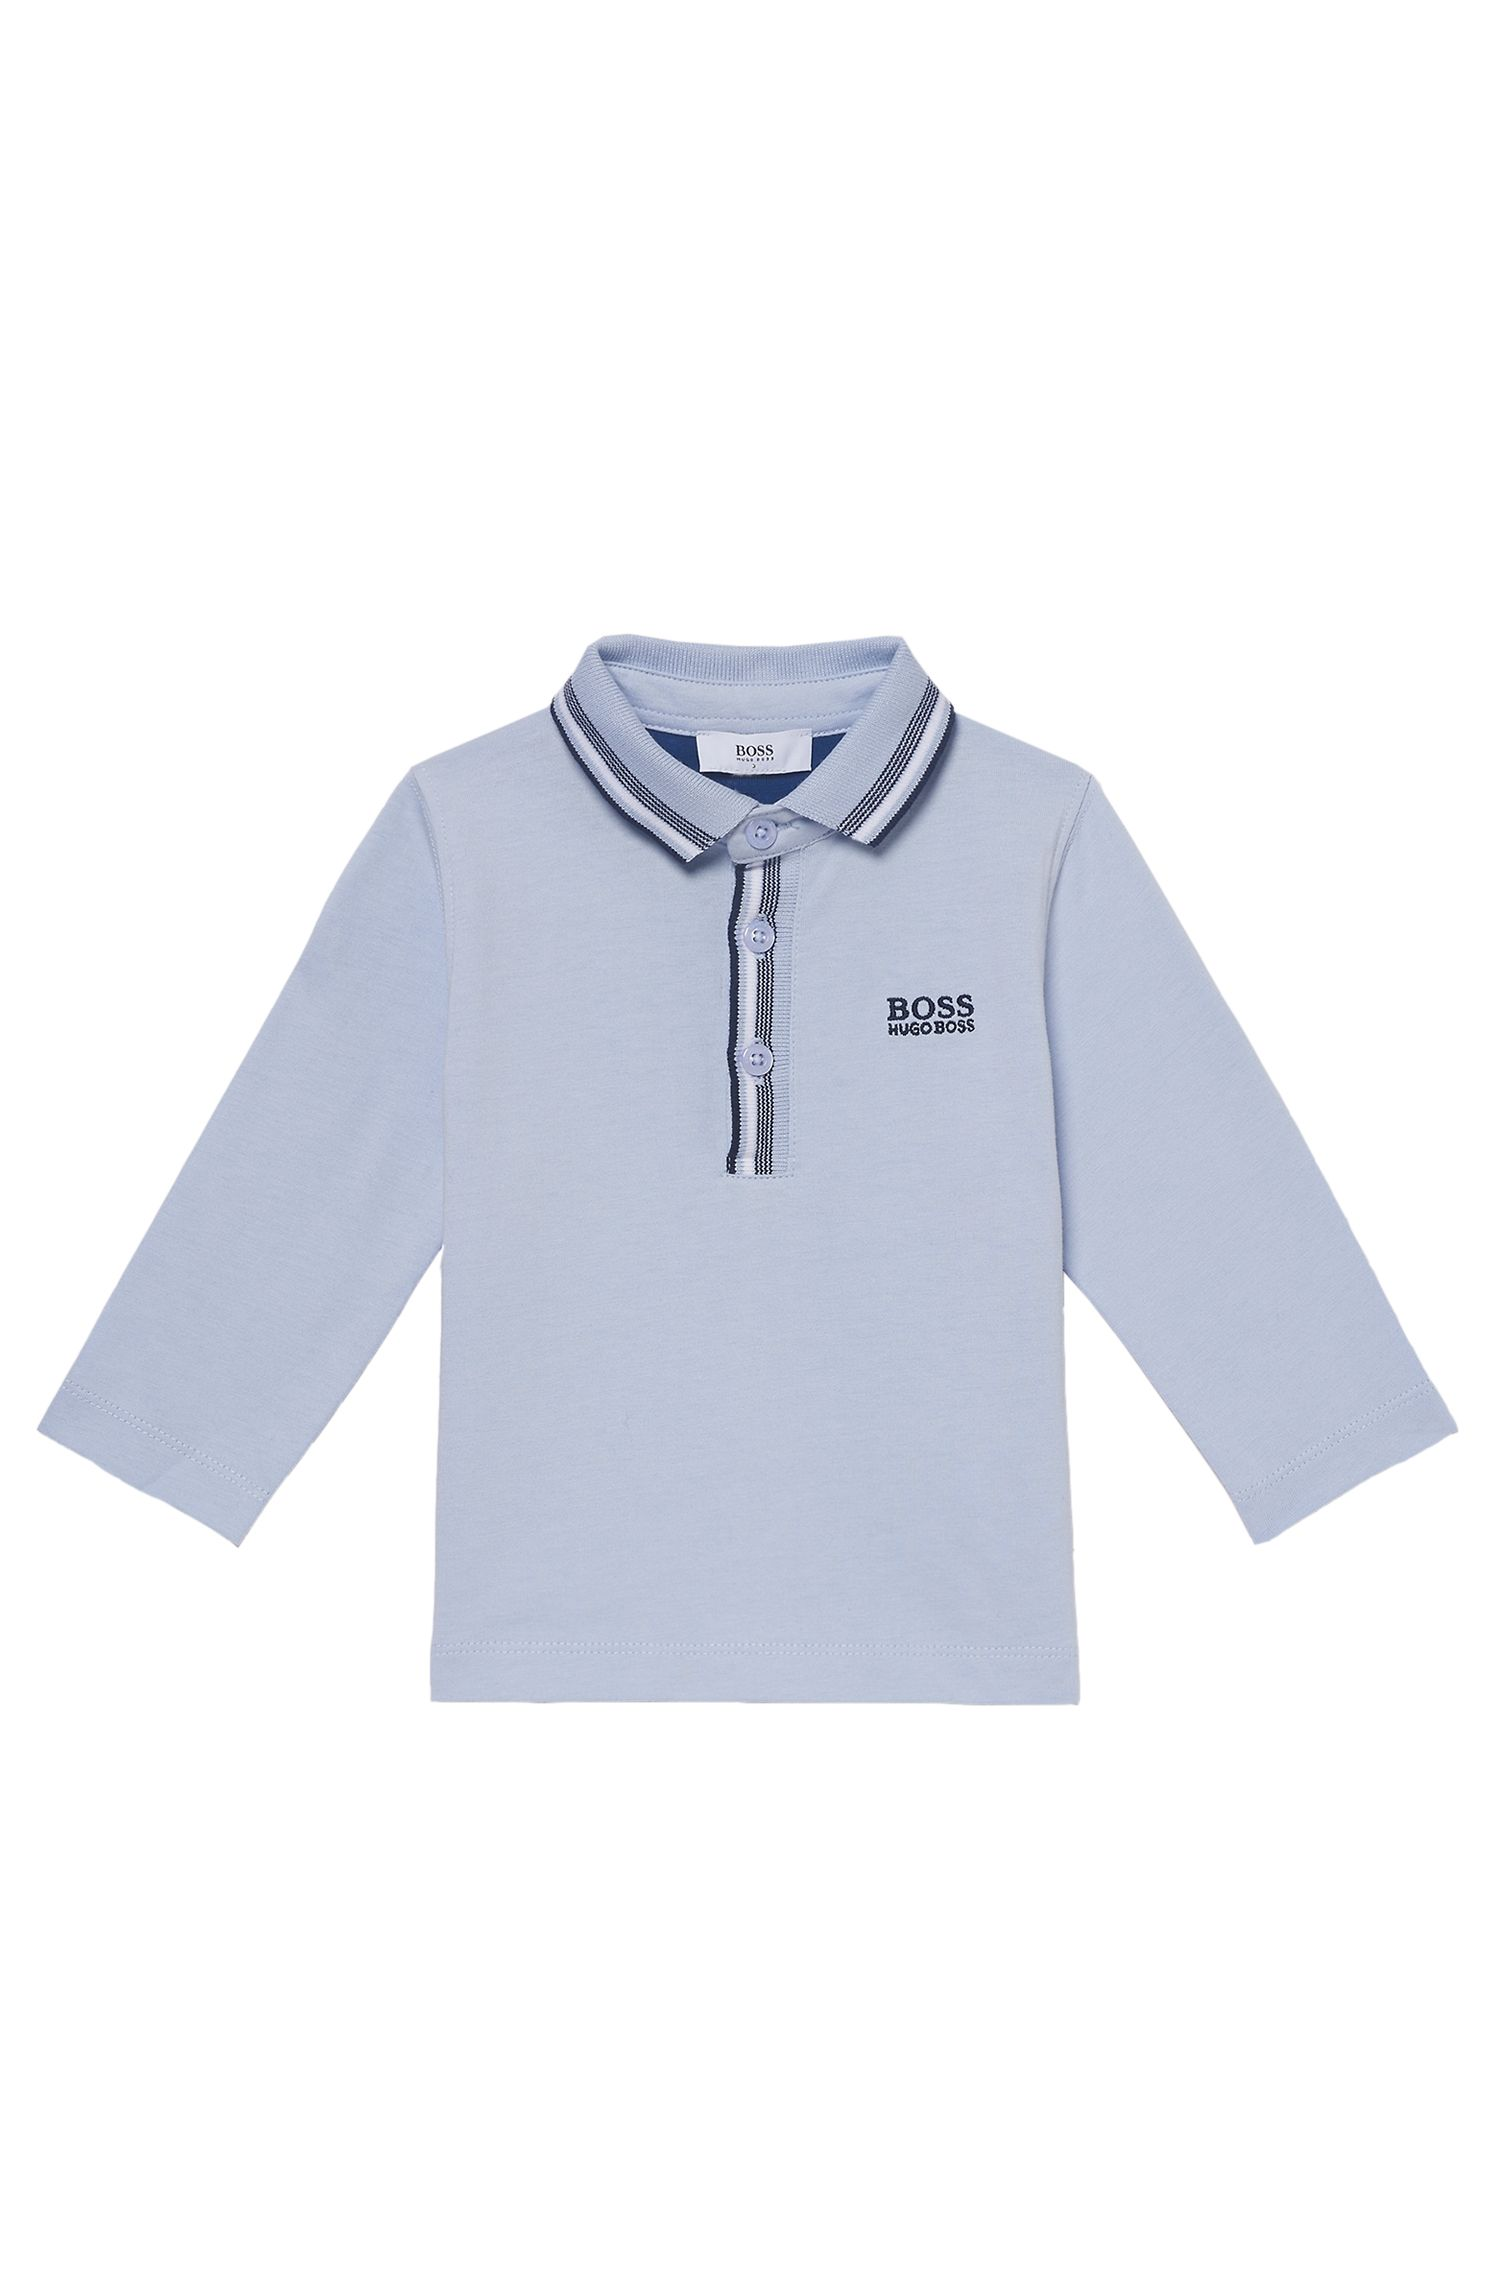 'J05500' | Toddler Stretch Cotton Blend Polo Shirt